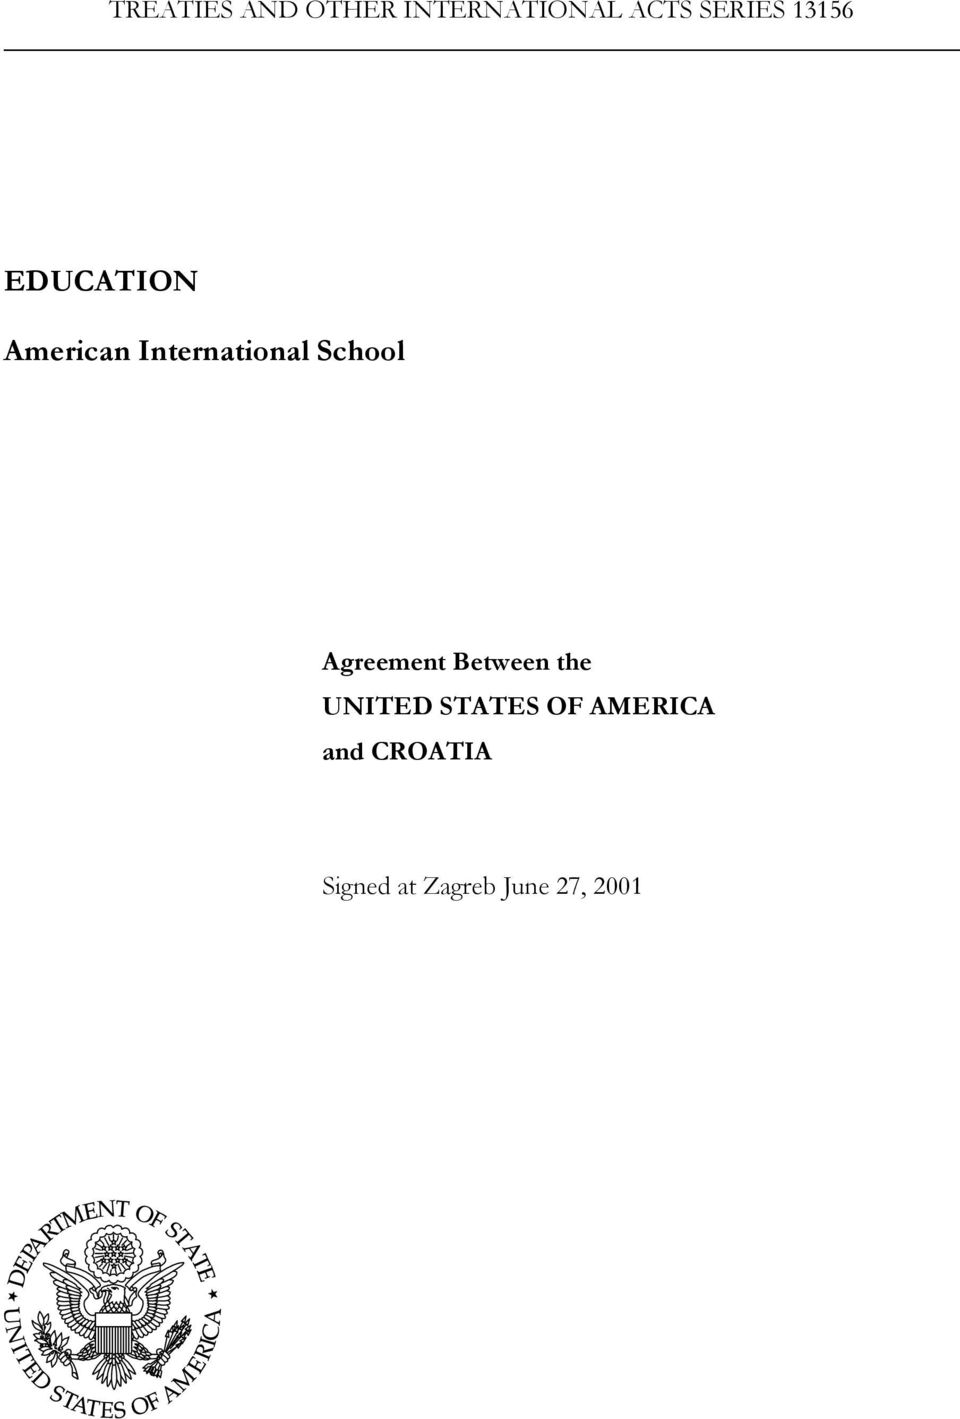 School Agreement Between the UNITED STATES